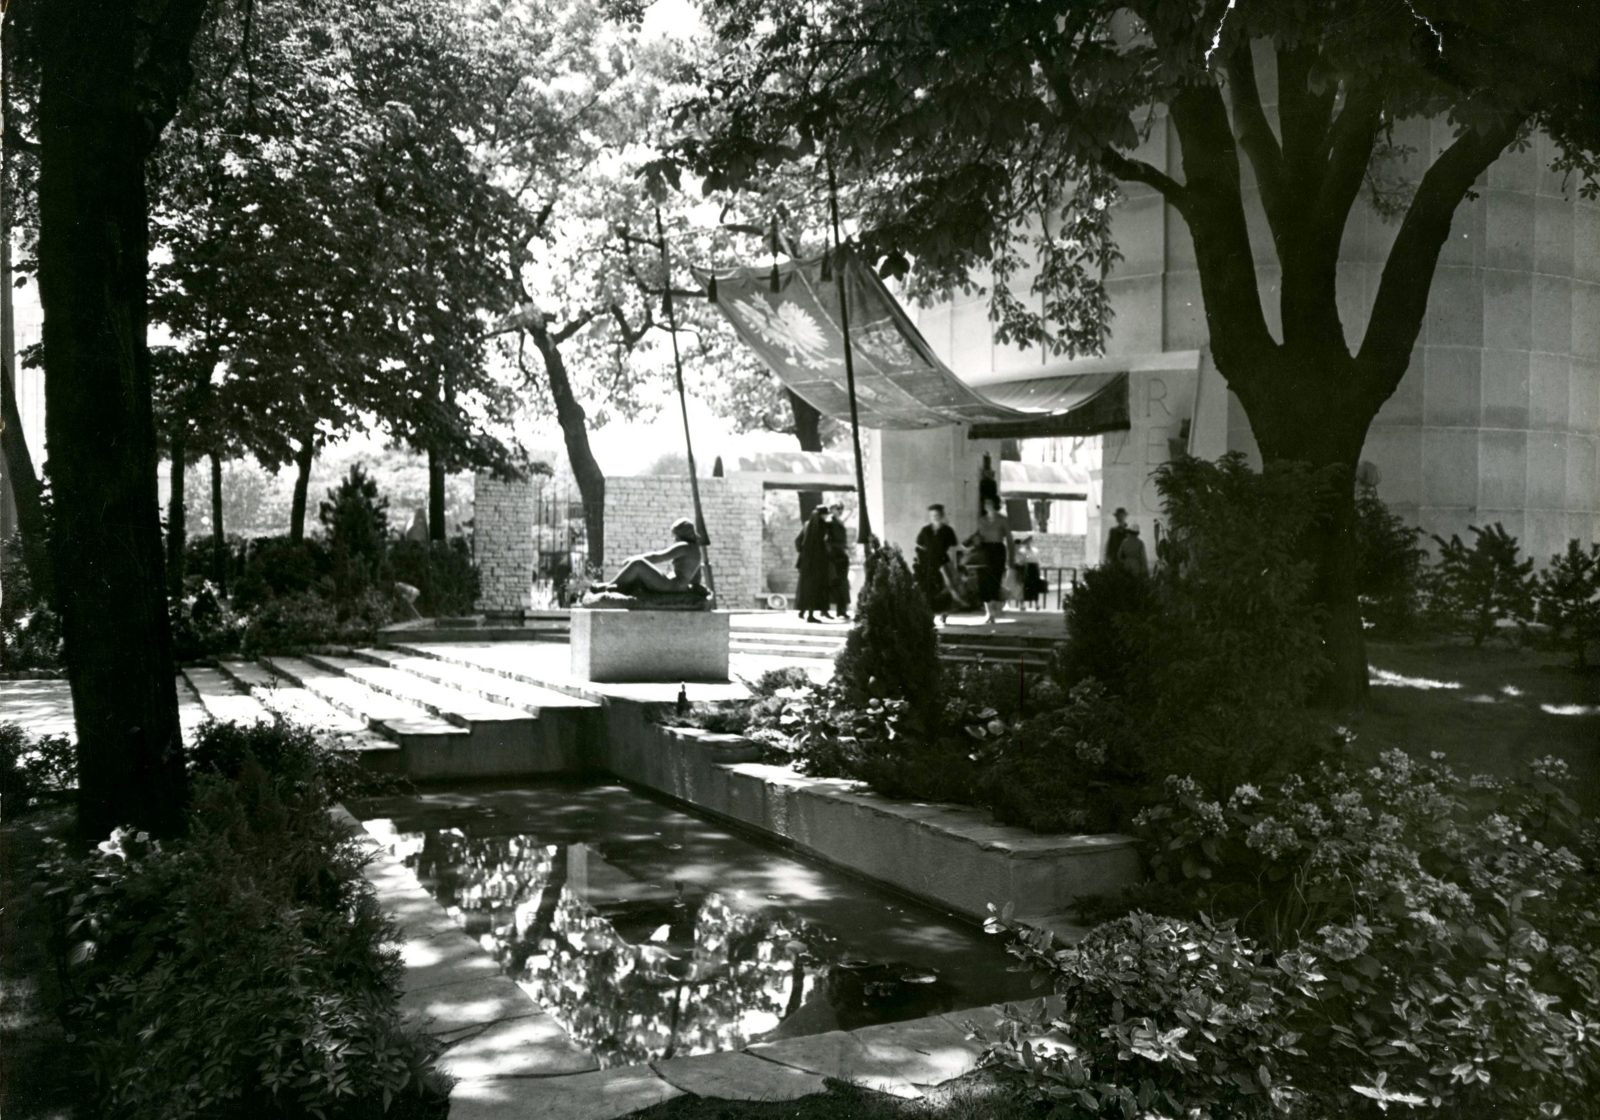 View of the main entrance photo RUAN, 1937. Polish Academy of Sciences Archives, Lech Niemojewski's archives, file no. III-67, no. 84, photo 1164